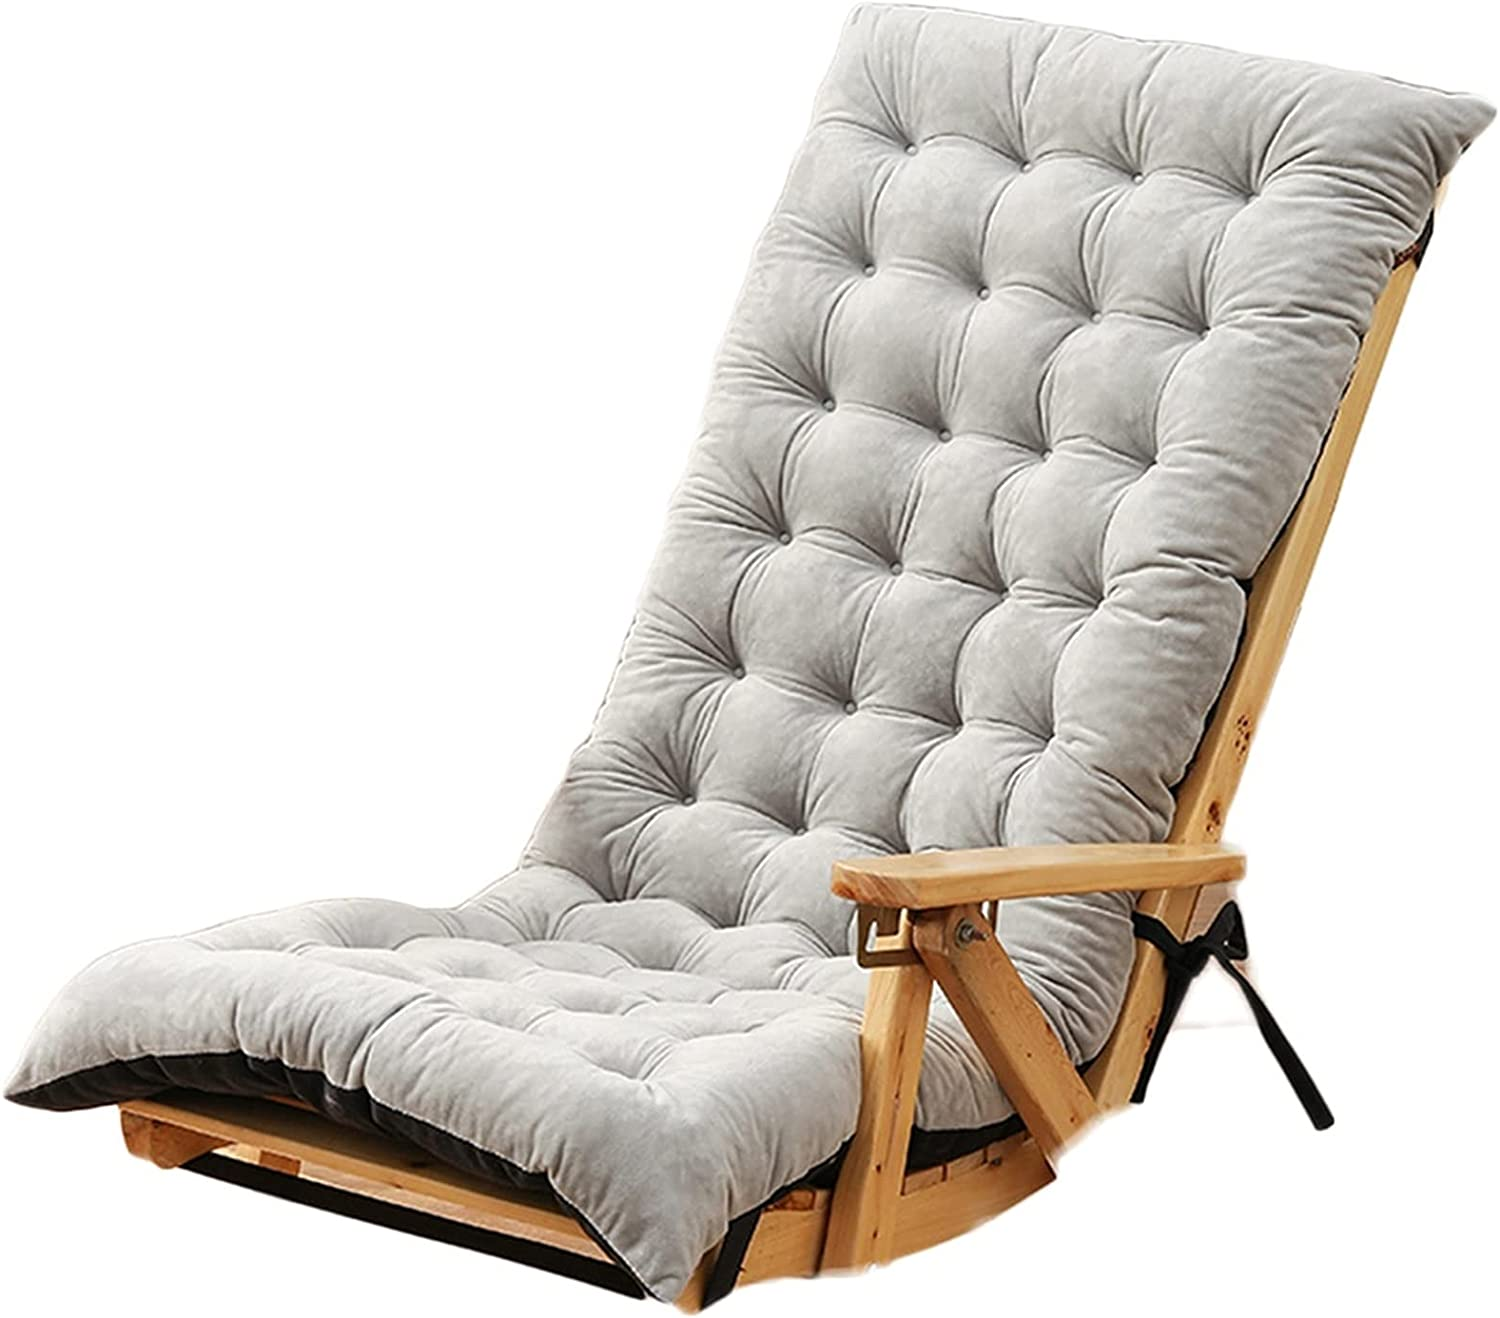 DaFei Super popular specialty store Sunlounger Cushions Only 125cm Garden Max 49% OFF Chair Pat